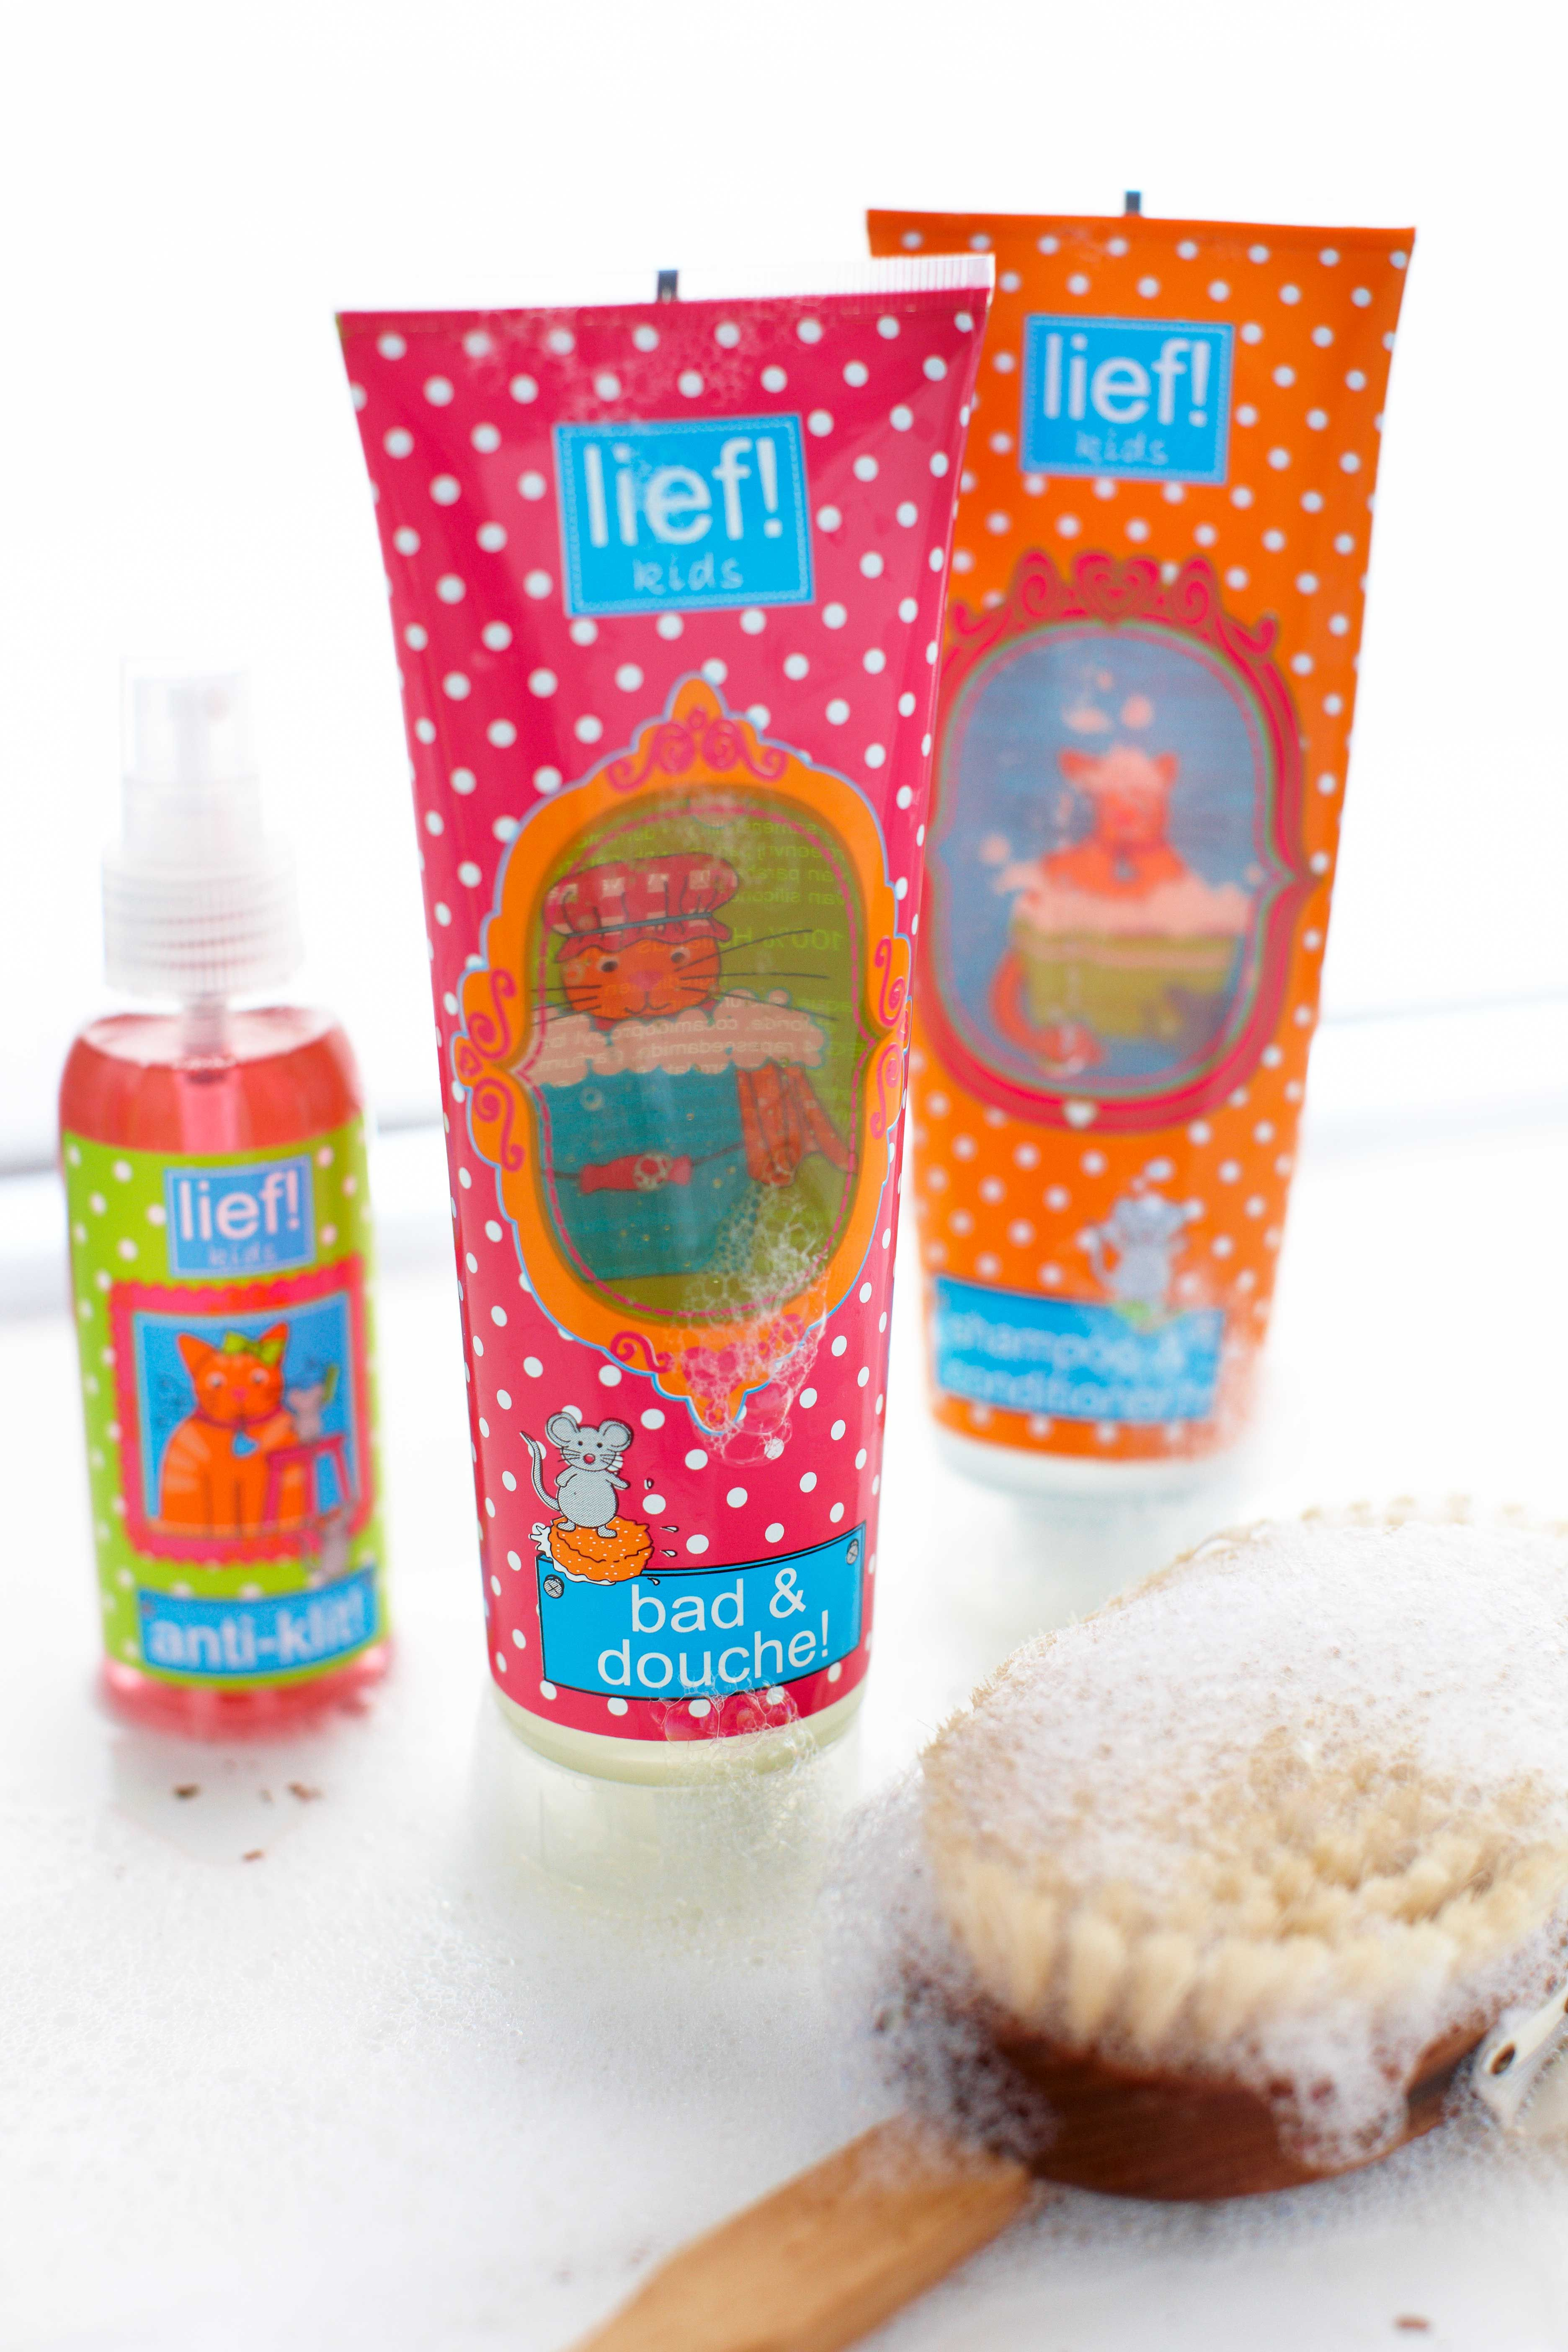 lief! lifestyle care products lieflifestyle.nl | ☆ Lief